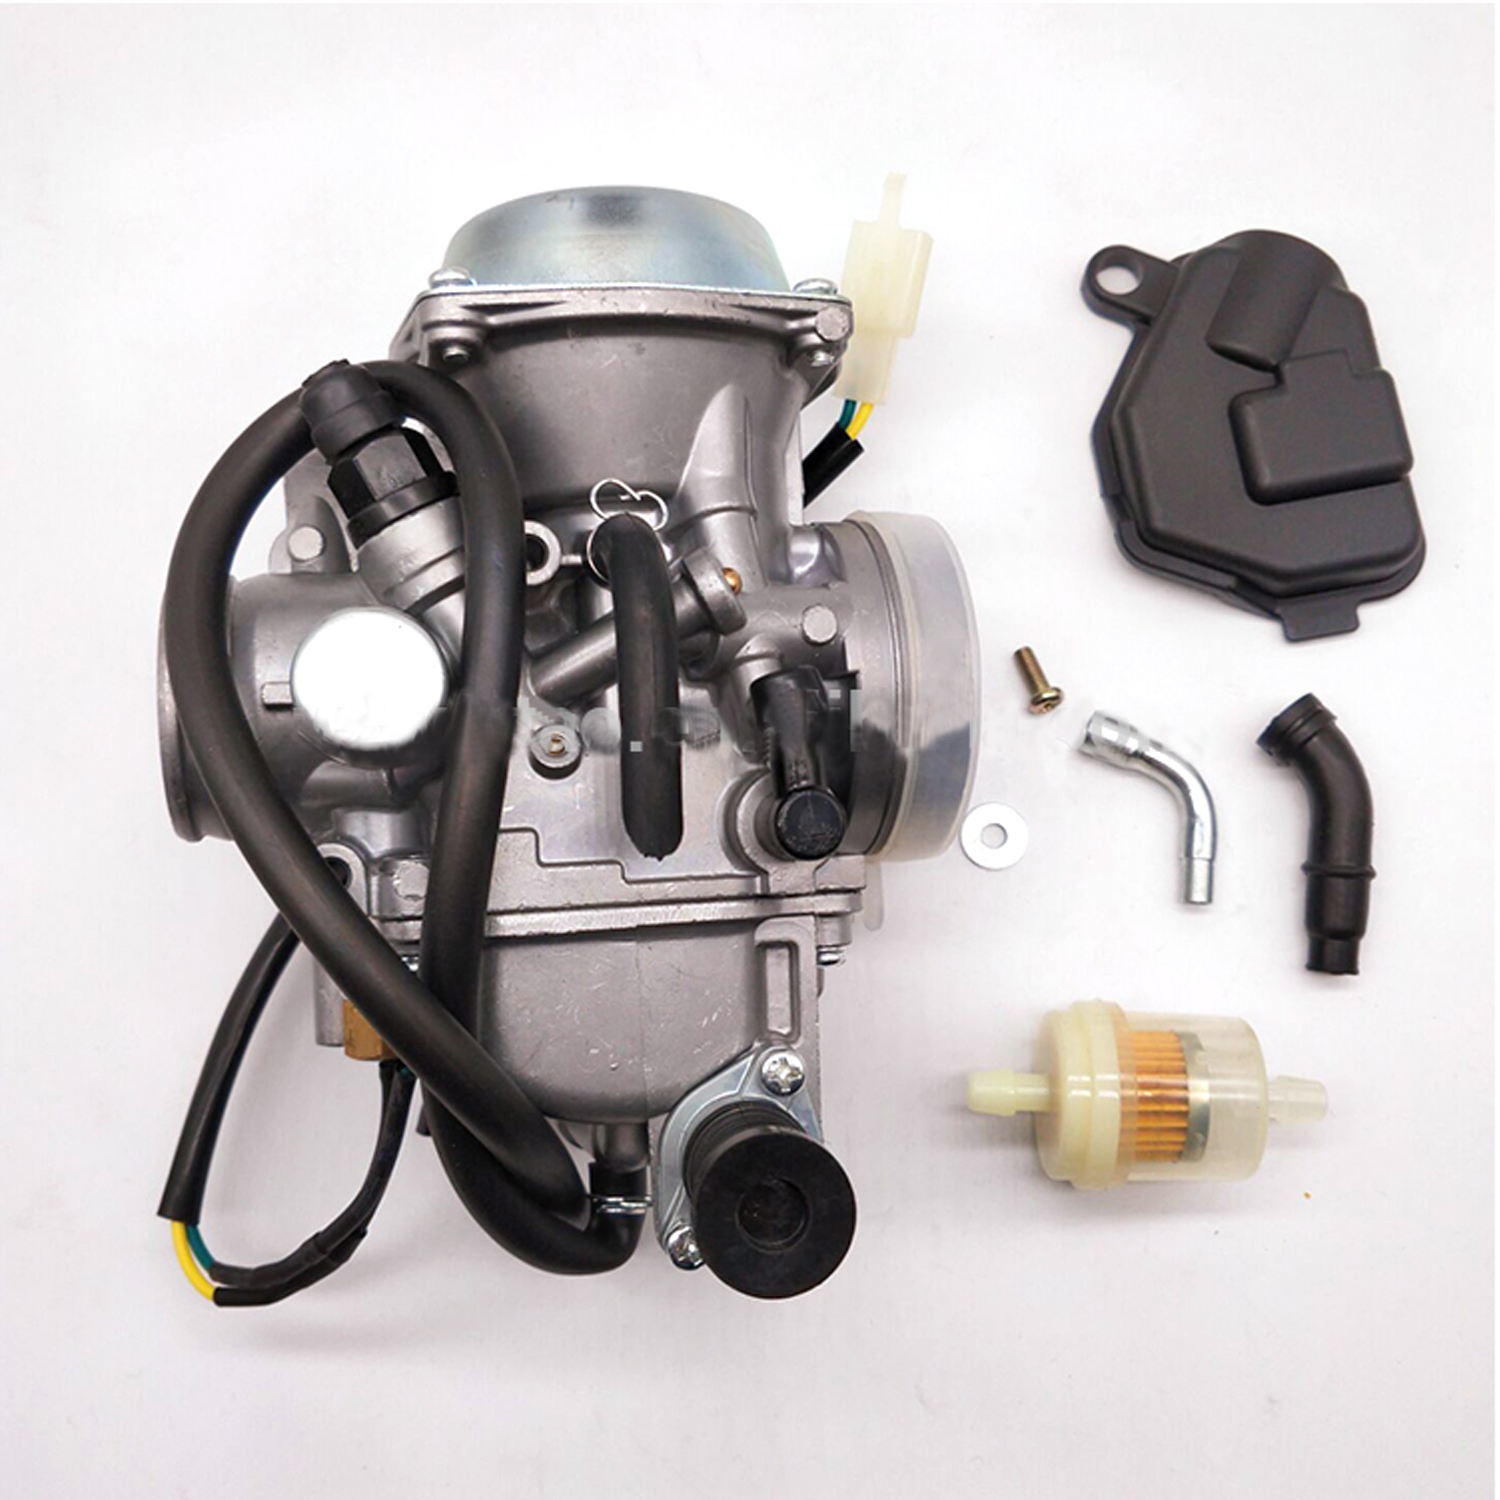 Carburetor For Honda Foreman 400 450 FOURTRAX 250 300 Free Cable